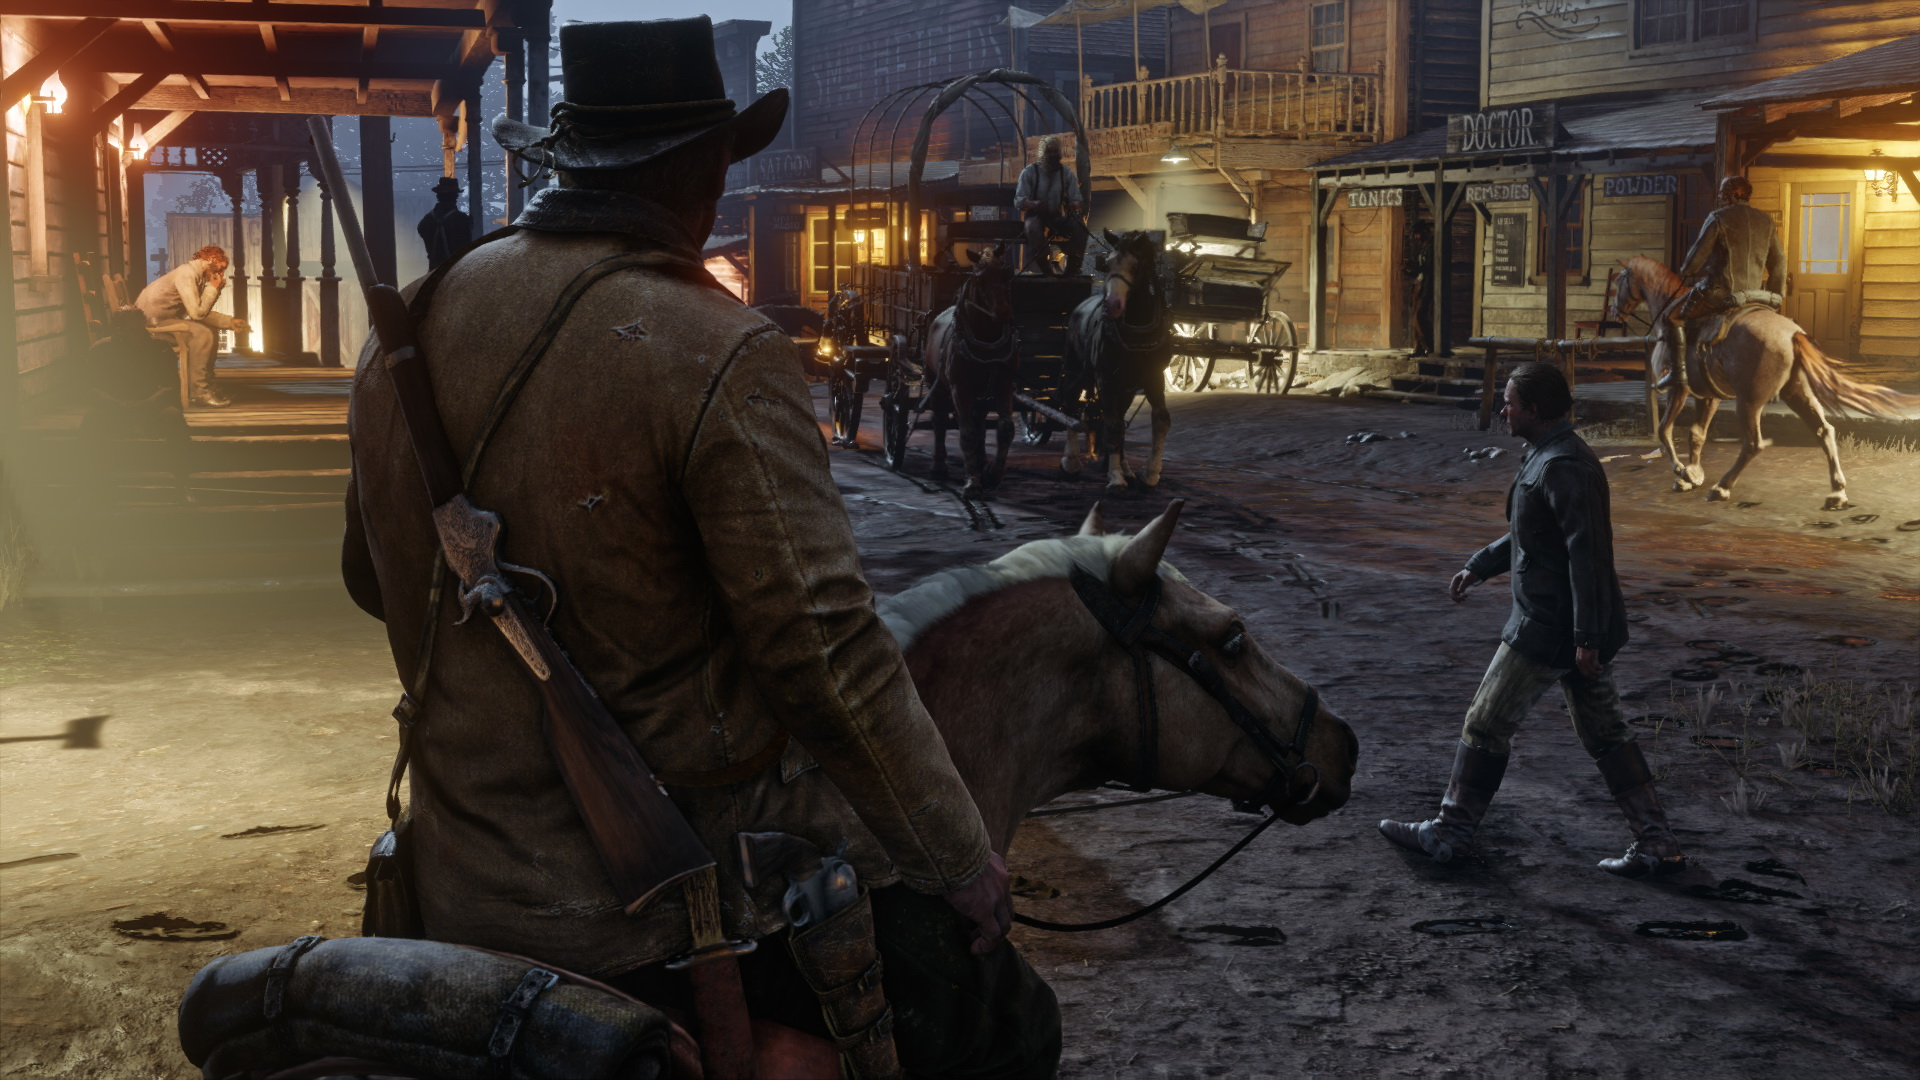 red-dead-redemption-2-will-have-microtransactions-and-it-isnt-hard-to-see-why-social.jpg